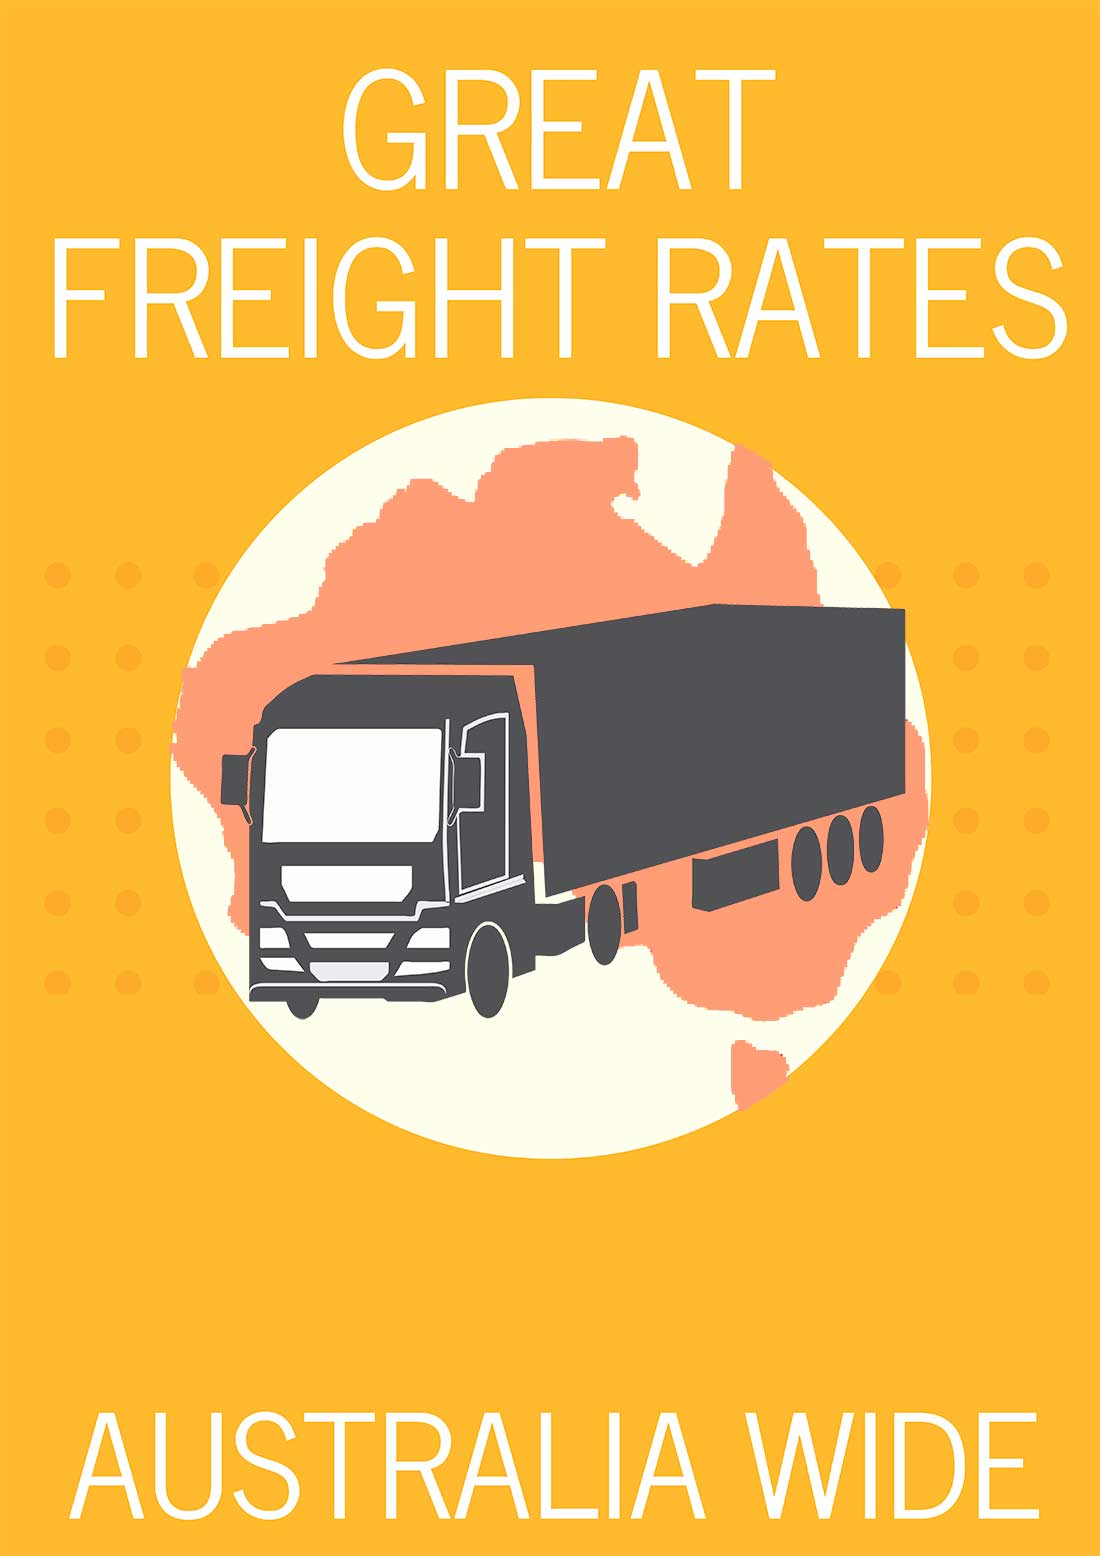 Great Freight Rates Australia Wide